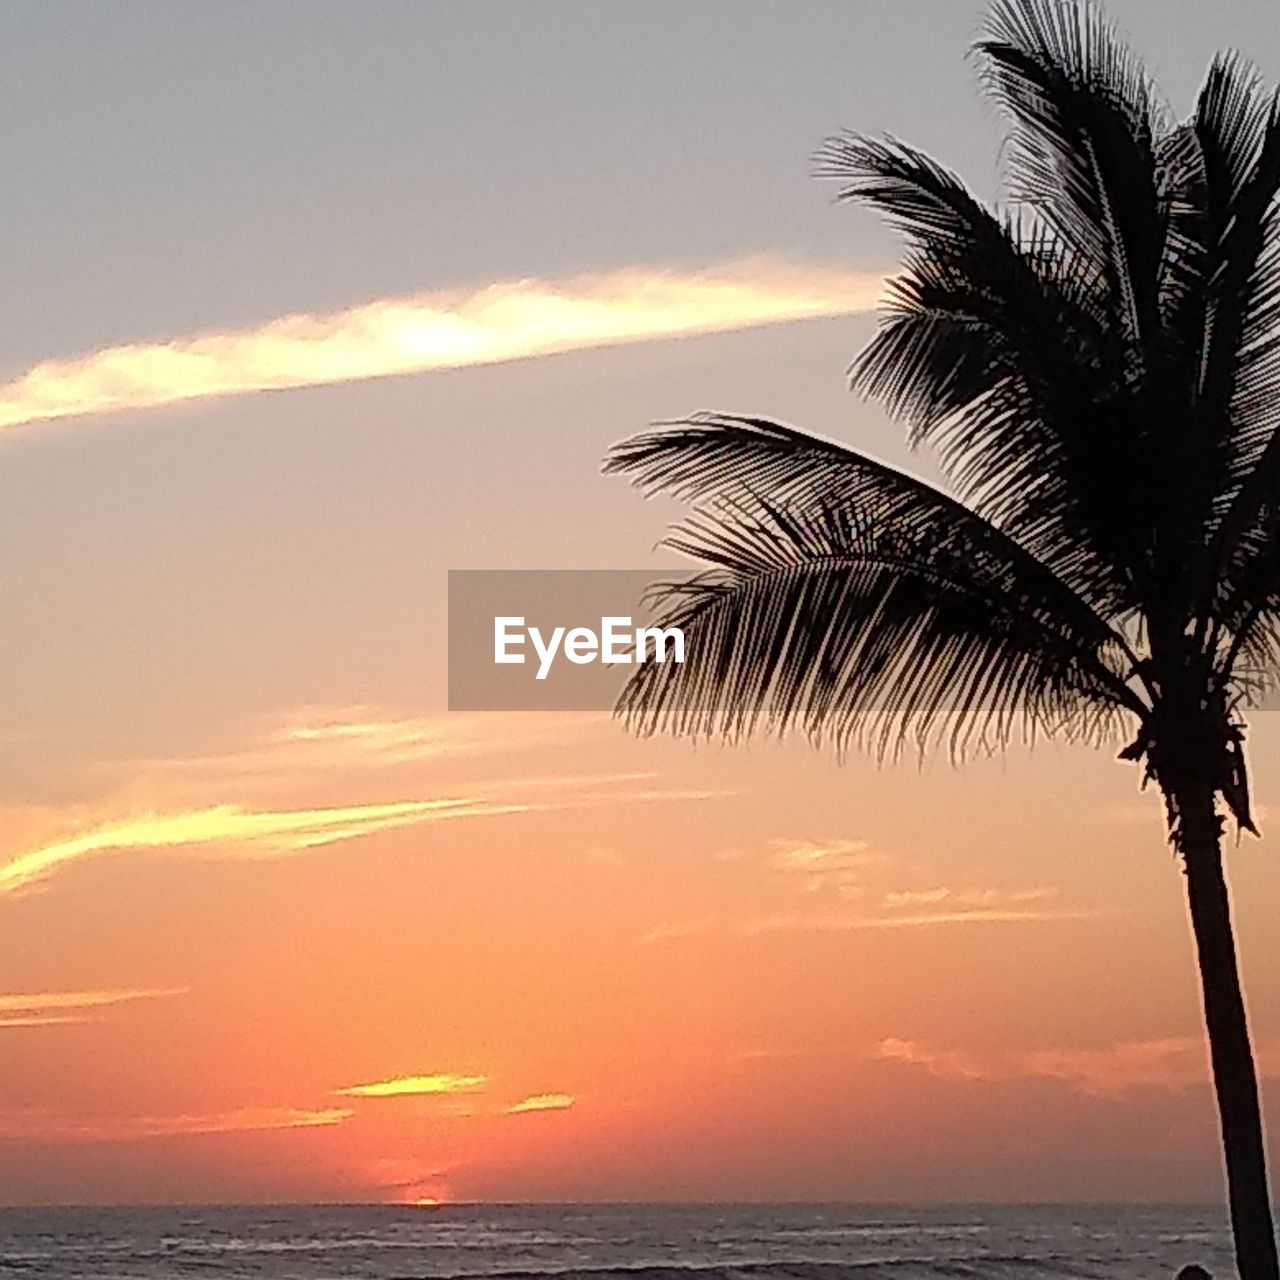 sky, sunset, sea, water, horizon over water, horizon, beauty in nature, palm tree, tropical climate, scenics - nature, tree, tranquility, tranquil scene, cloud - sky, nature, orange color, no people, plant, silhouette, outdoors, palm leaf, coconut palm tree